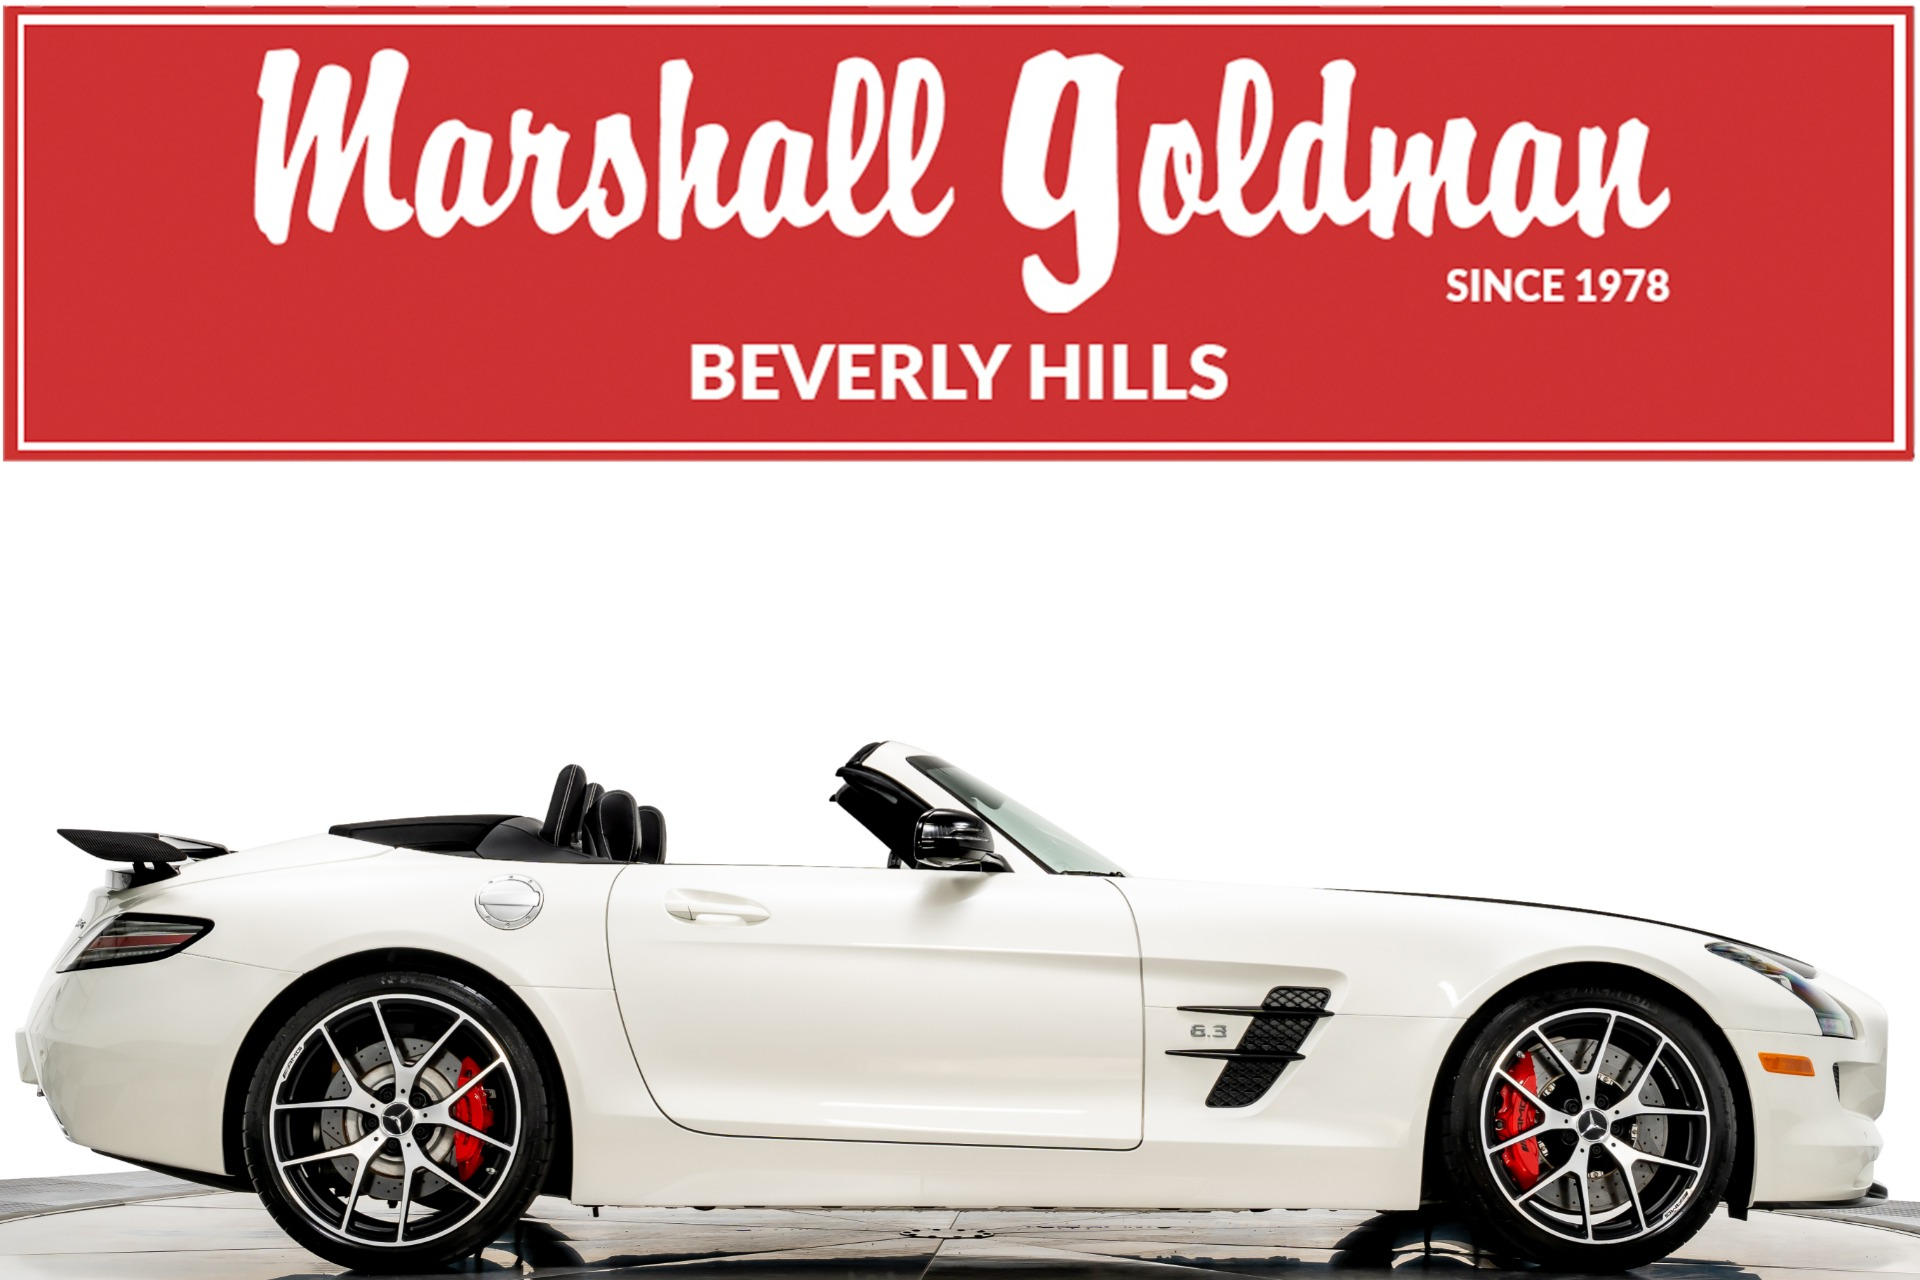 Used 2015 Mercedes Benz Sls Amg Gt Final Edition Roadster For Sale Sold Marshall Goldman Beverly Hills Stock B20734